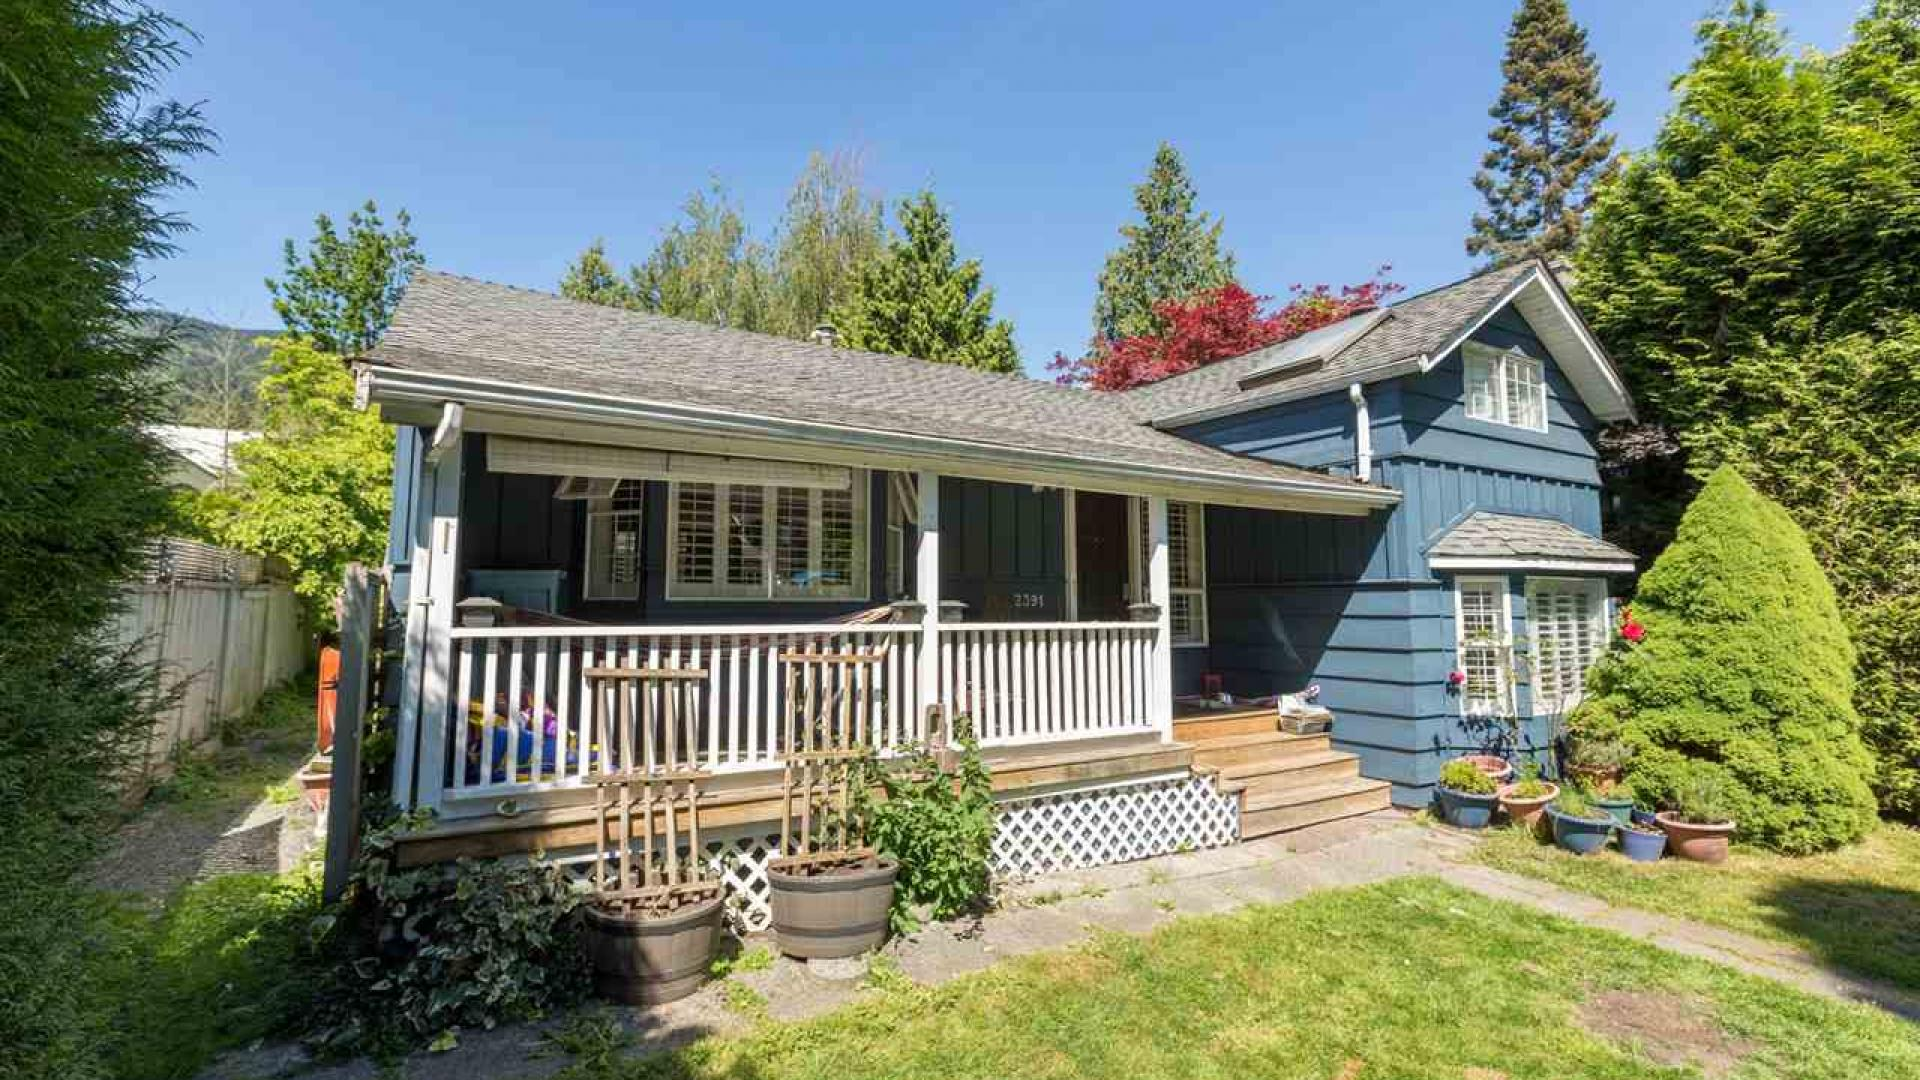 2391 Kings, Dundarave, West Vancouver 4